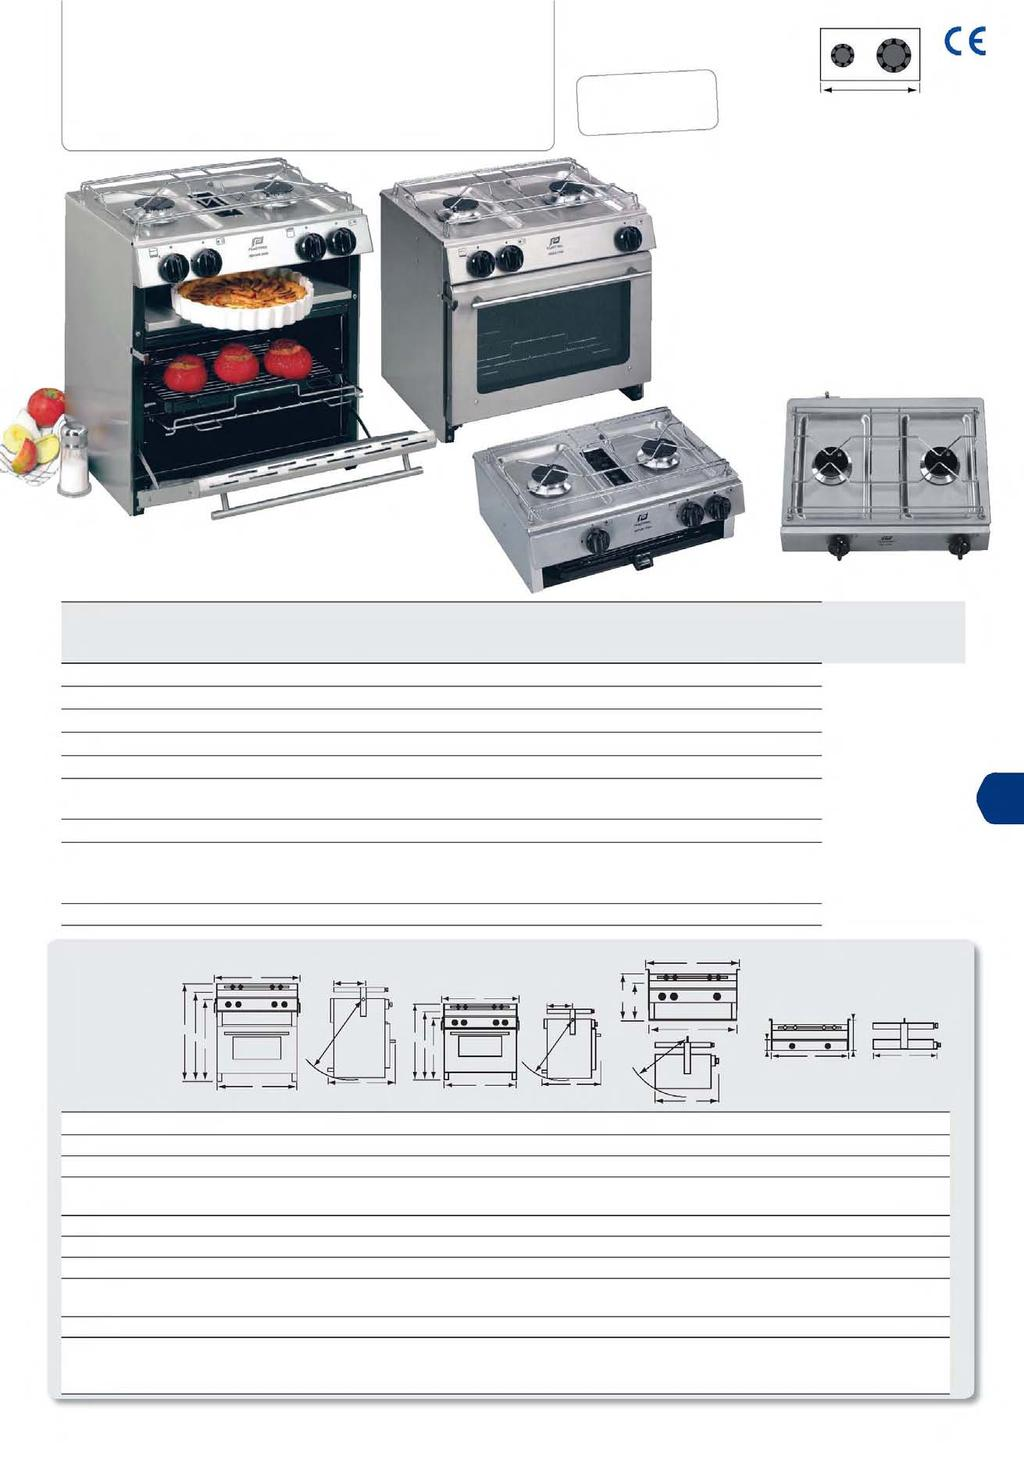 ookers & hobs : 4500 series Thermostat controlled oven.